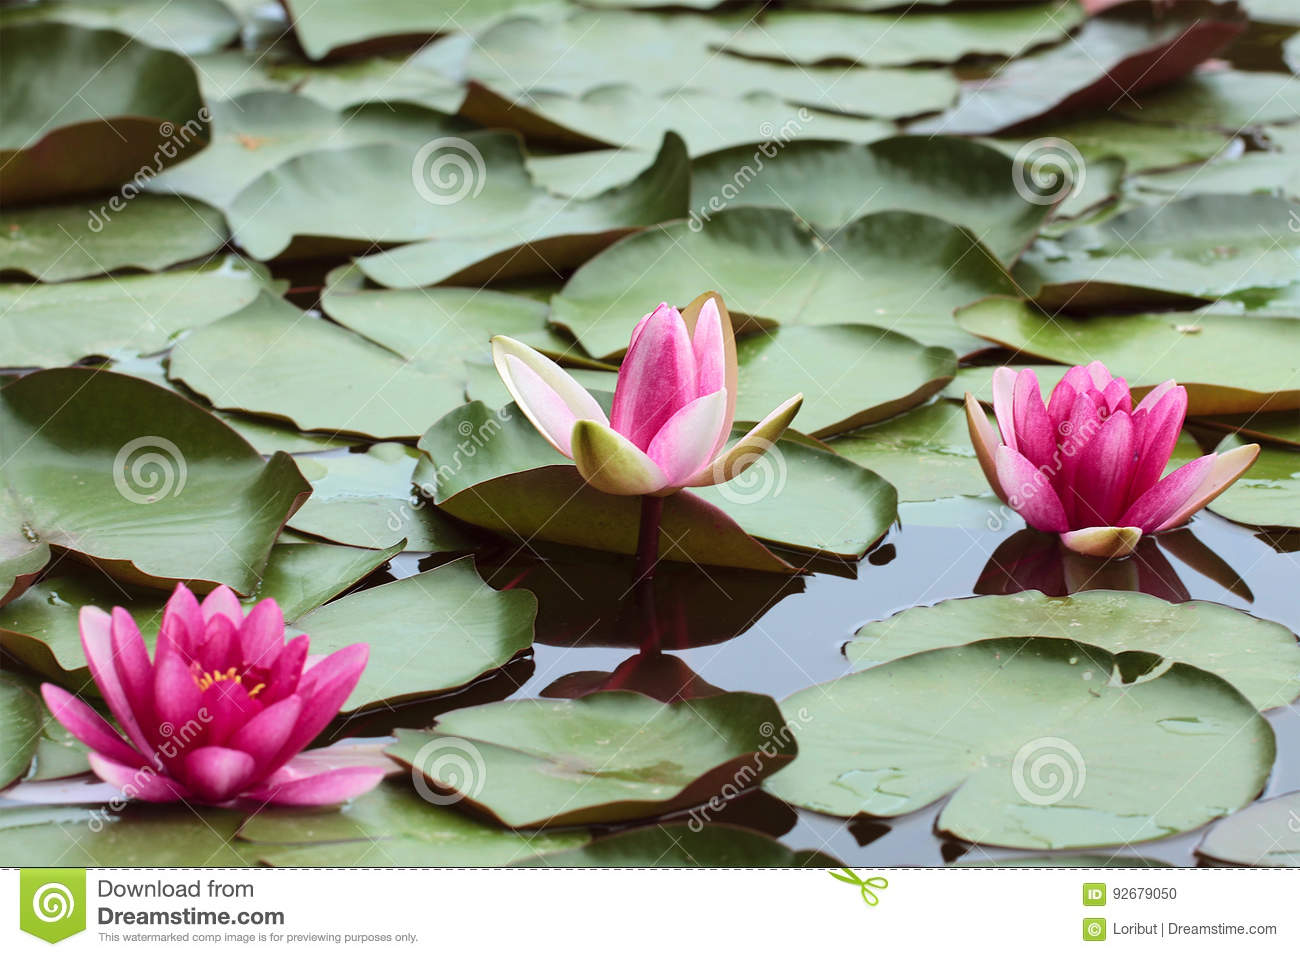 Ink flowers of water lilies and green round leaves of lilies stock download ink flowers of water lilies and green round leaves of lilies stock photo image izmirmasajfo